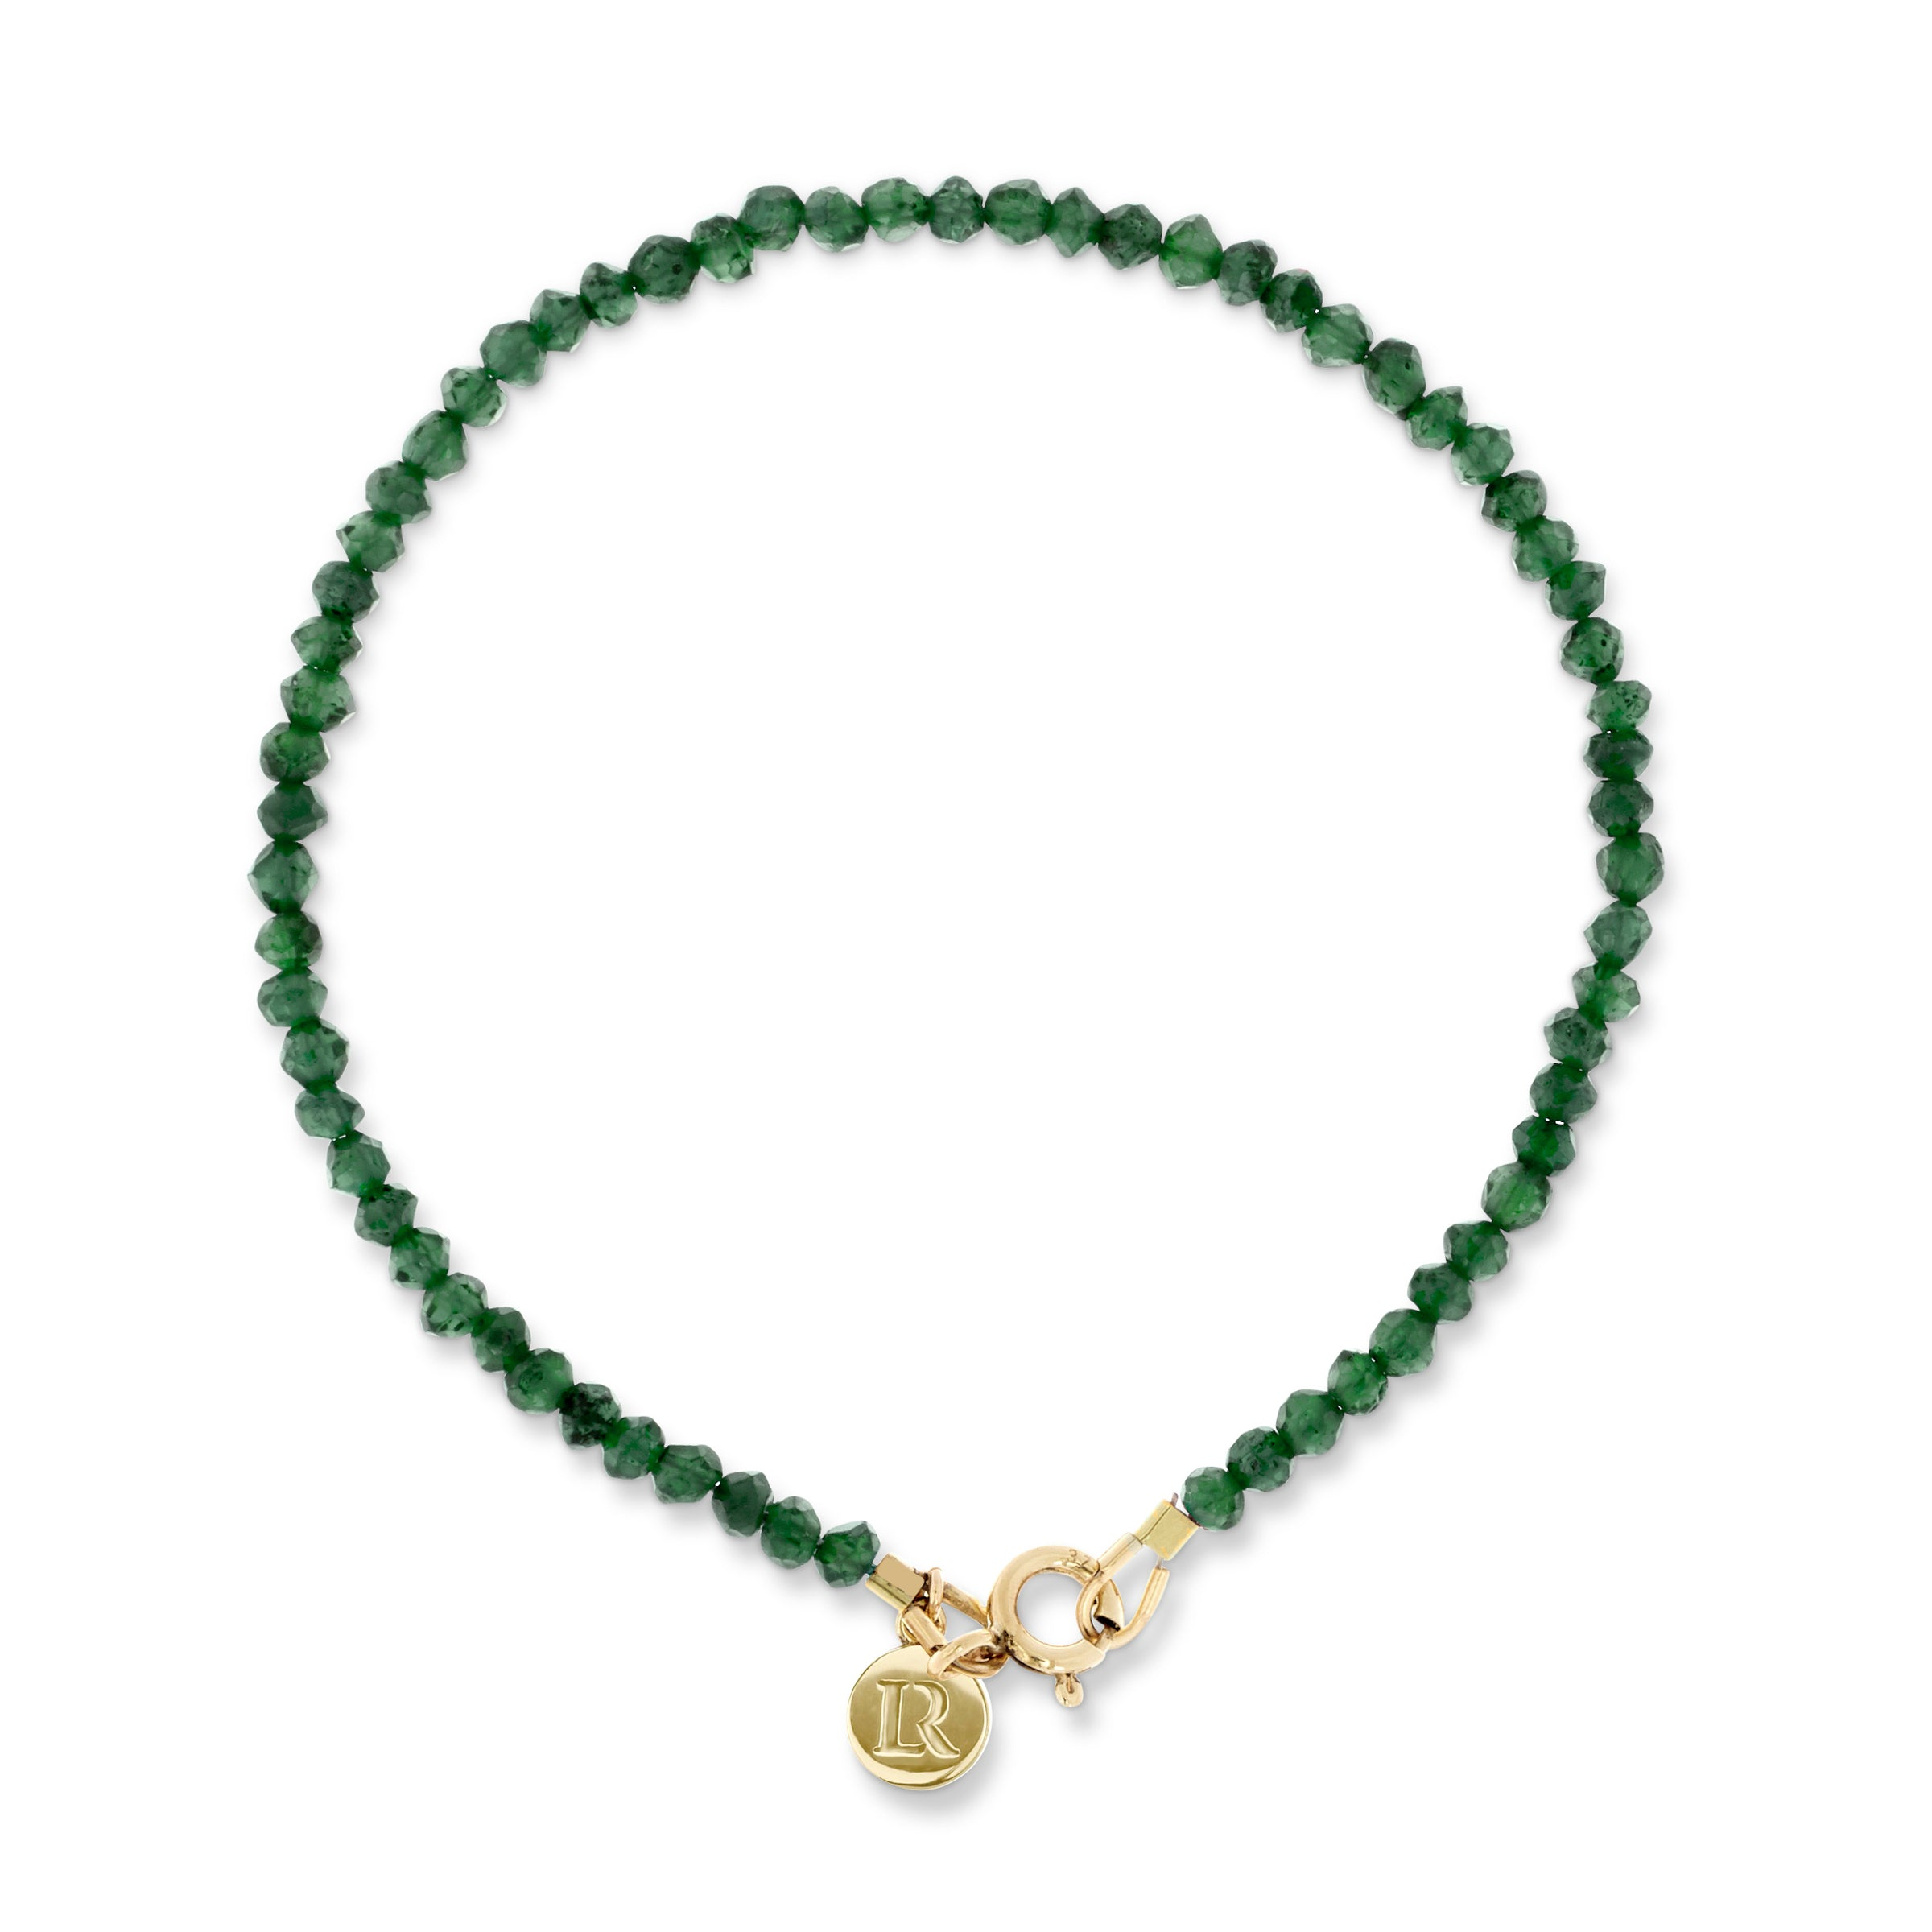 Gold and Emerald Bracelet by Luke Rose